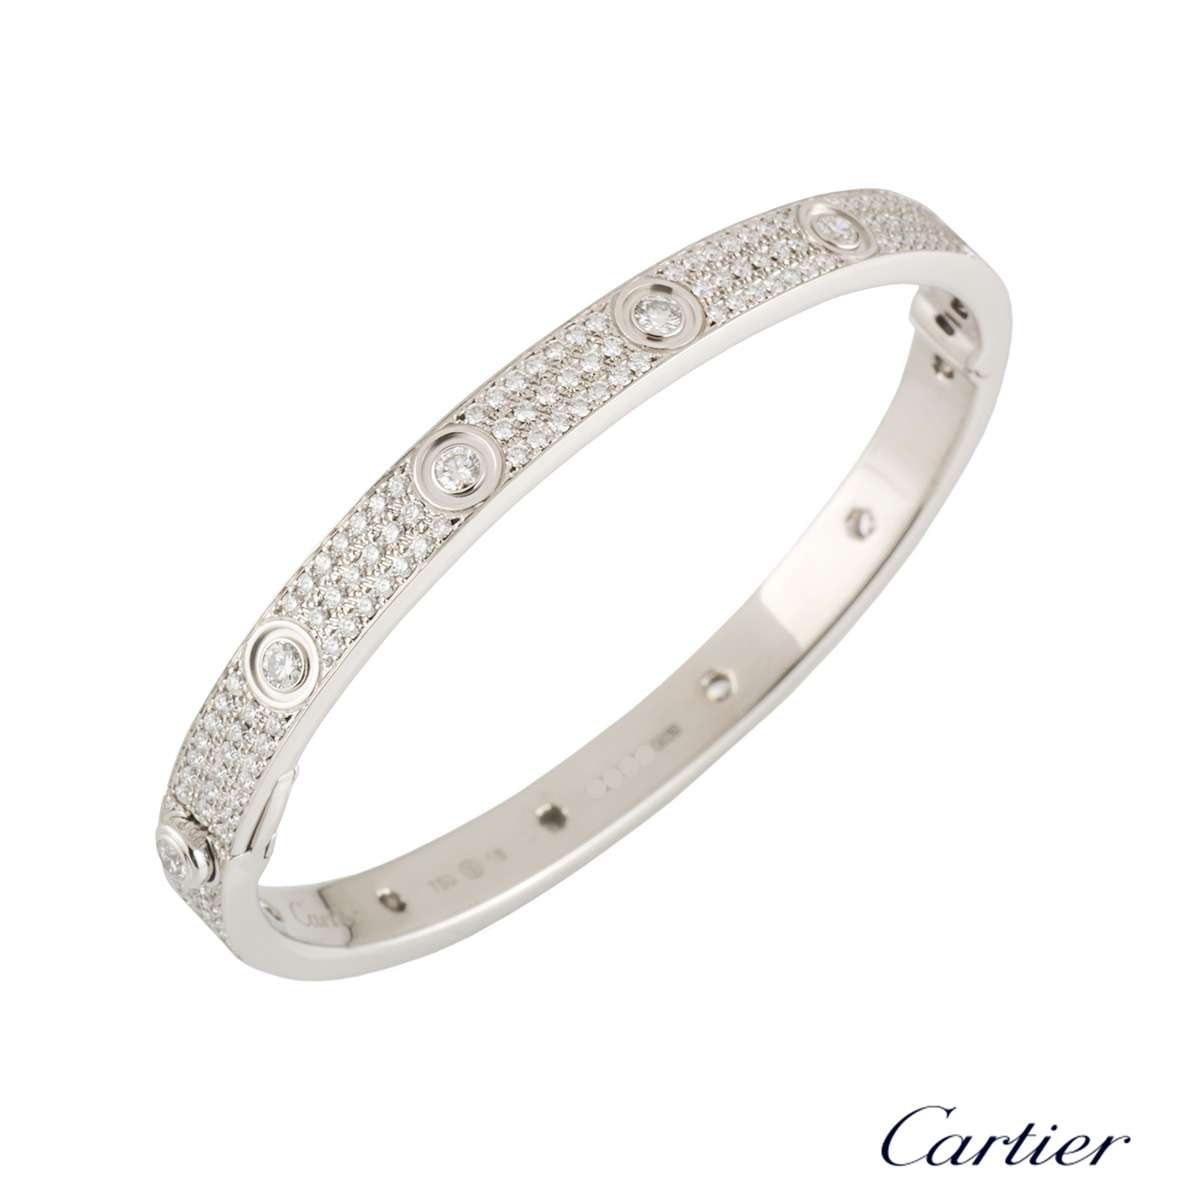 Cartier White Gold Pave Diamond Love Bracelet Size 18 N6033603